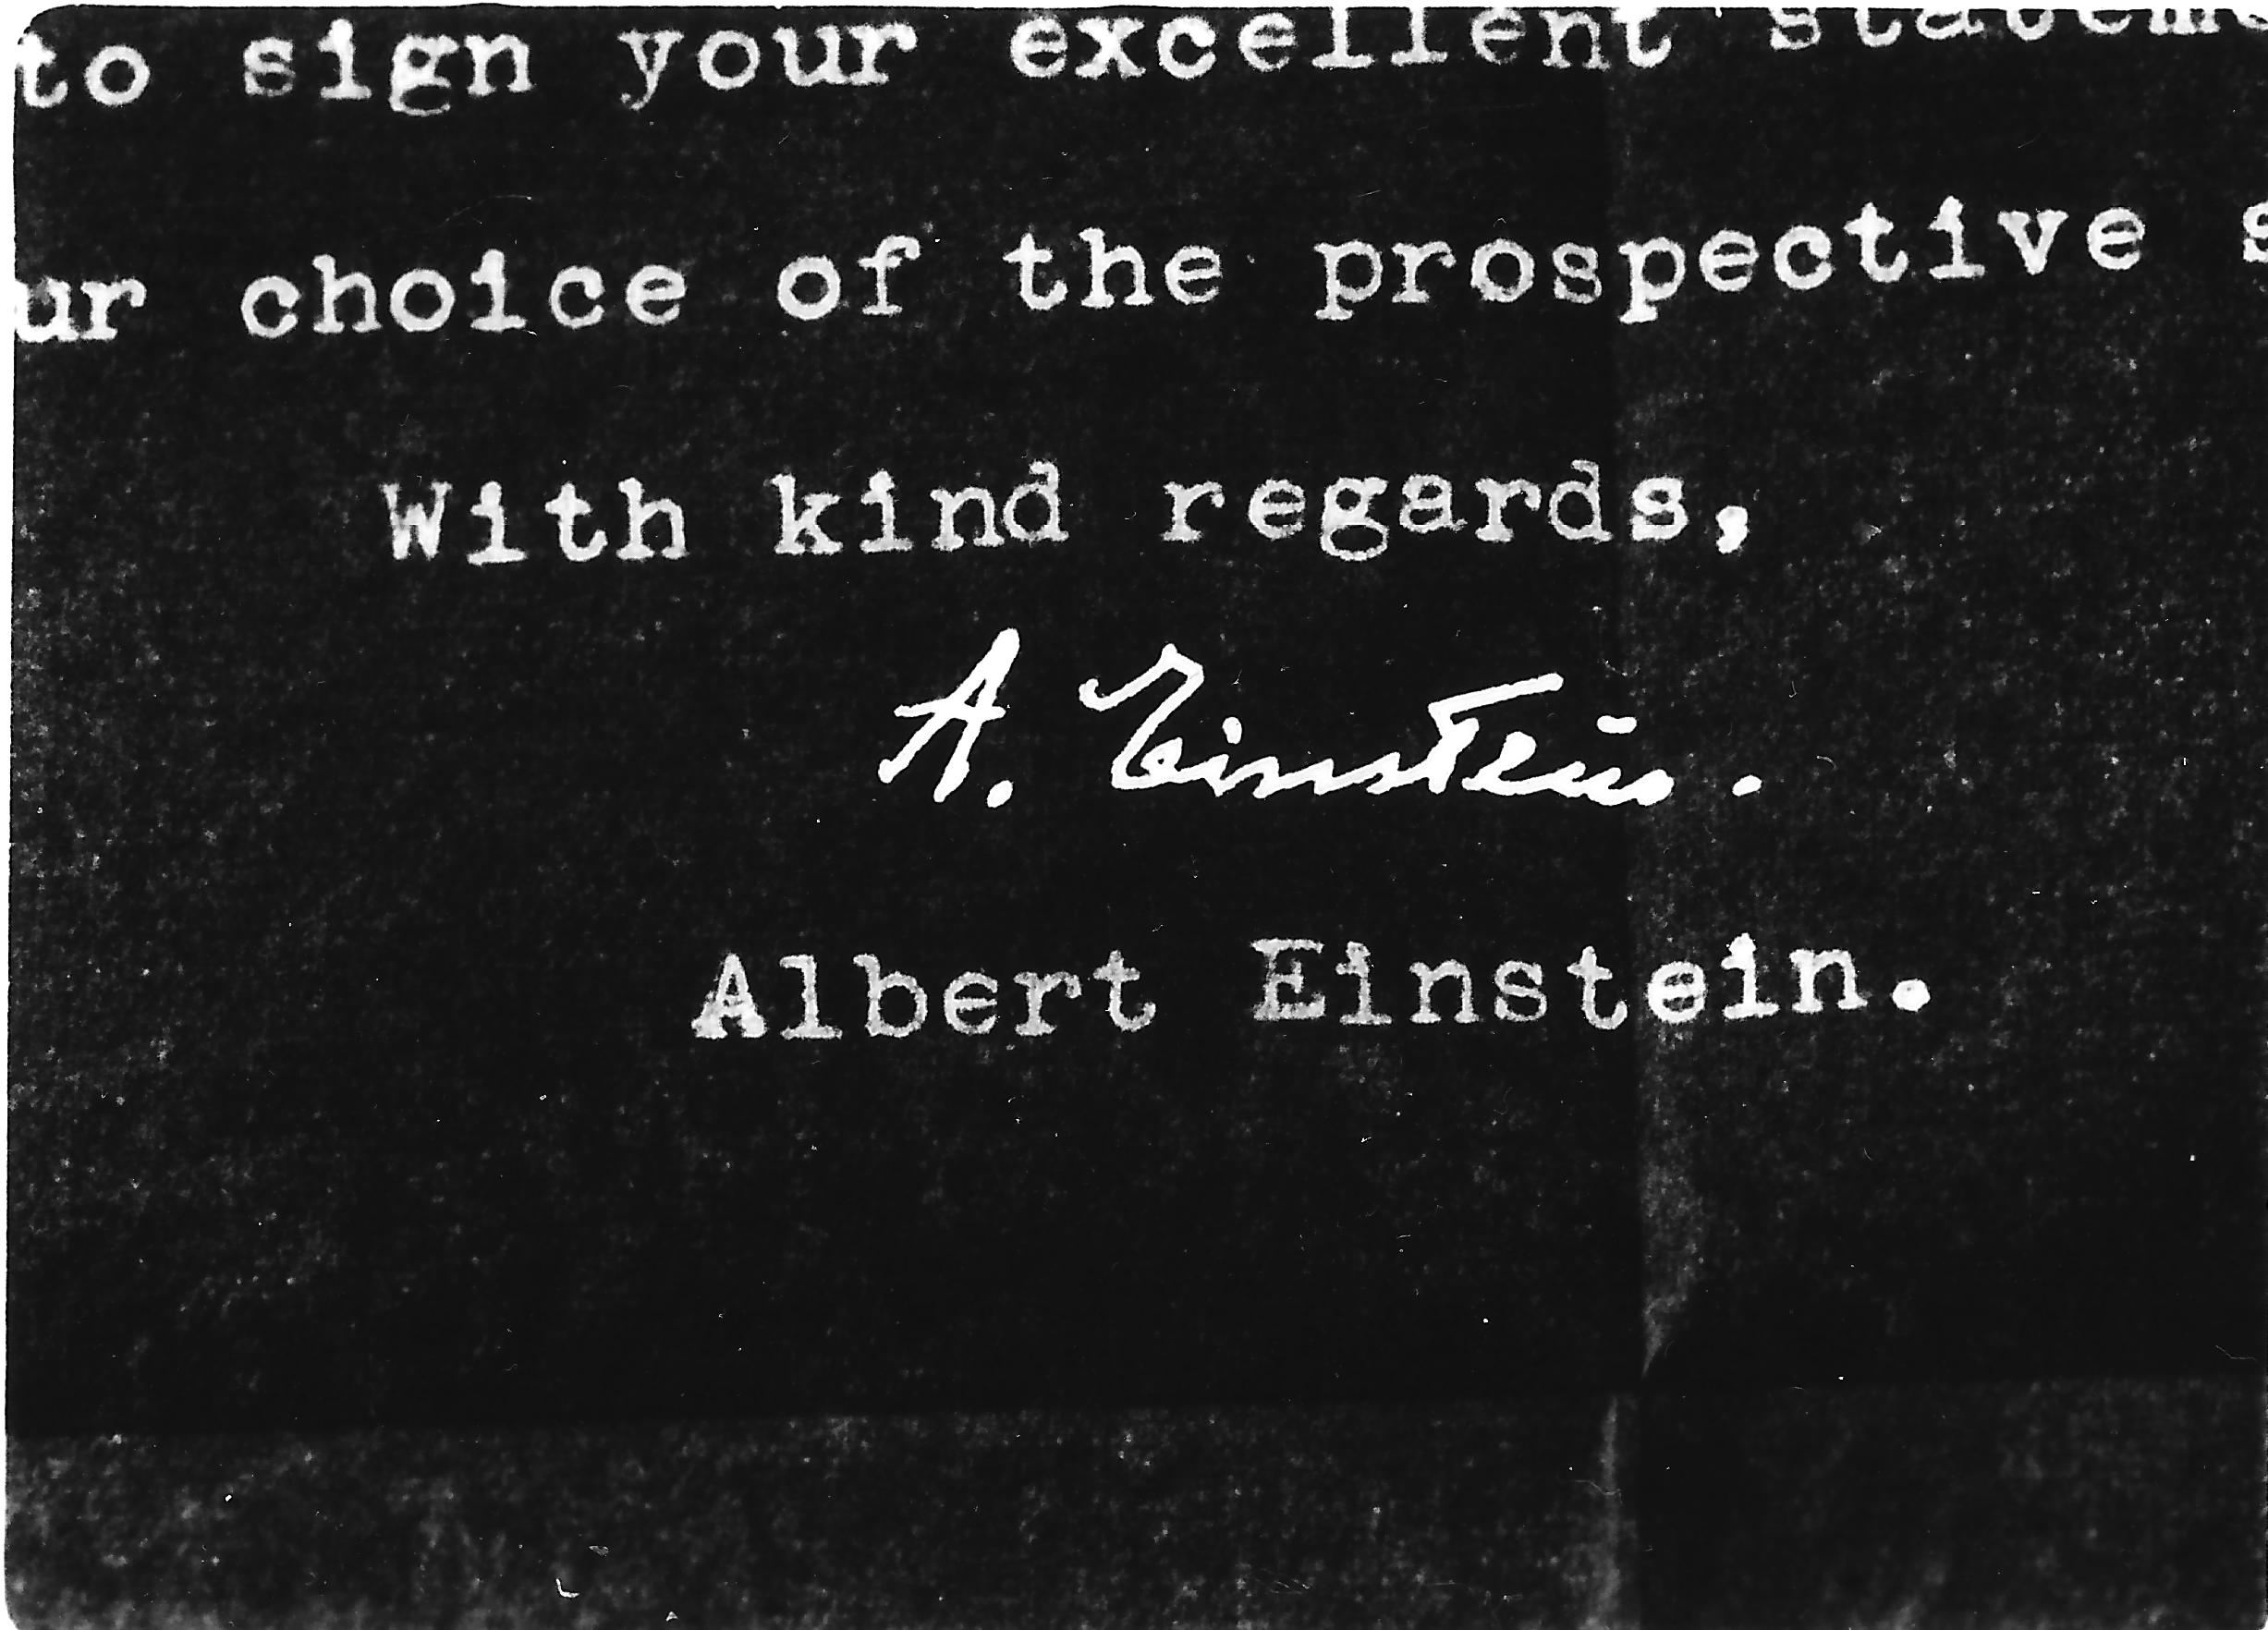 London Launch Of The Russell Einstein Manifesto on nuclear text message